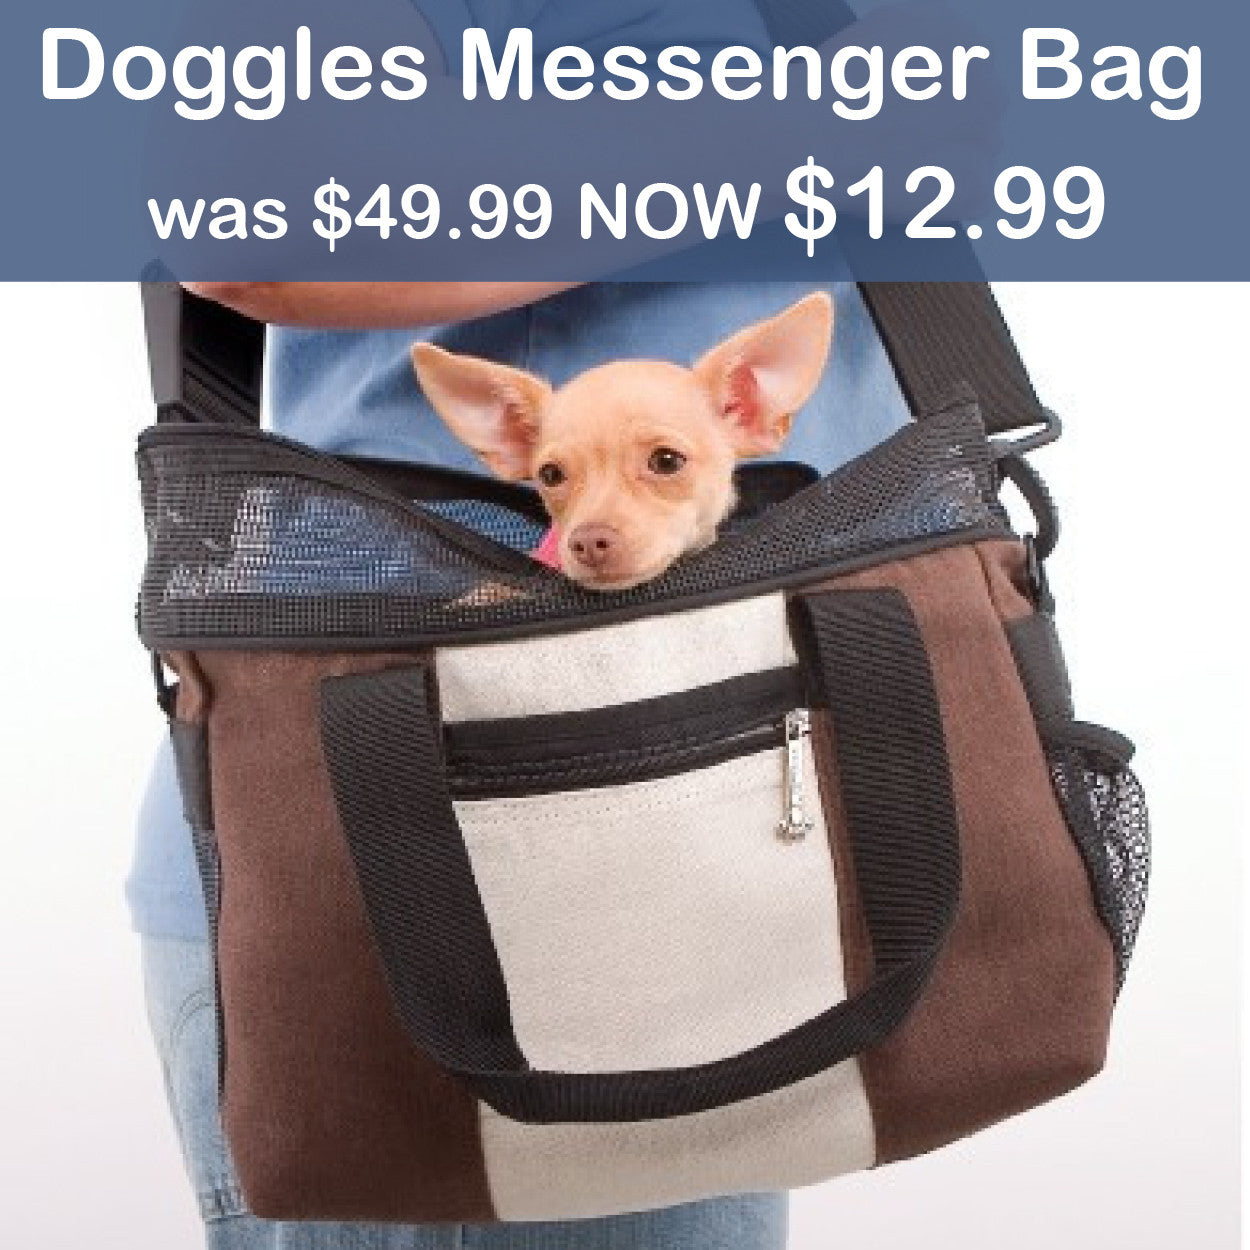 Doggles Messenger Bag SALE